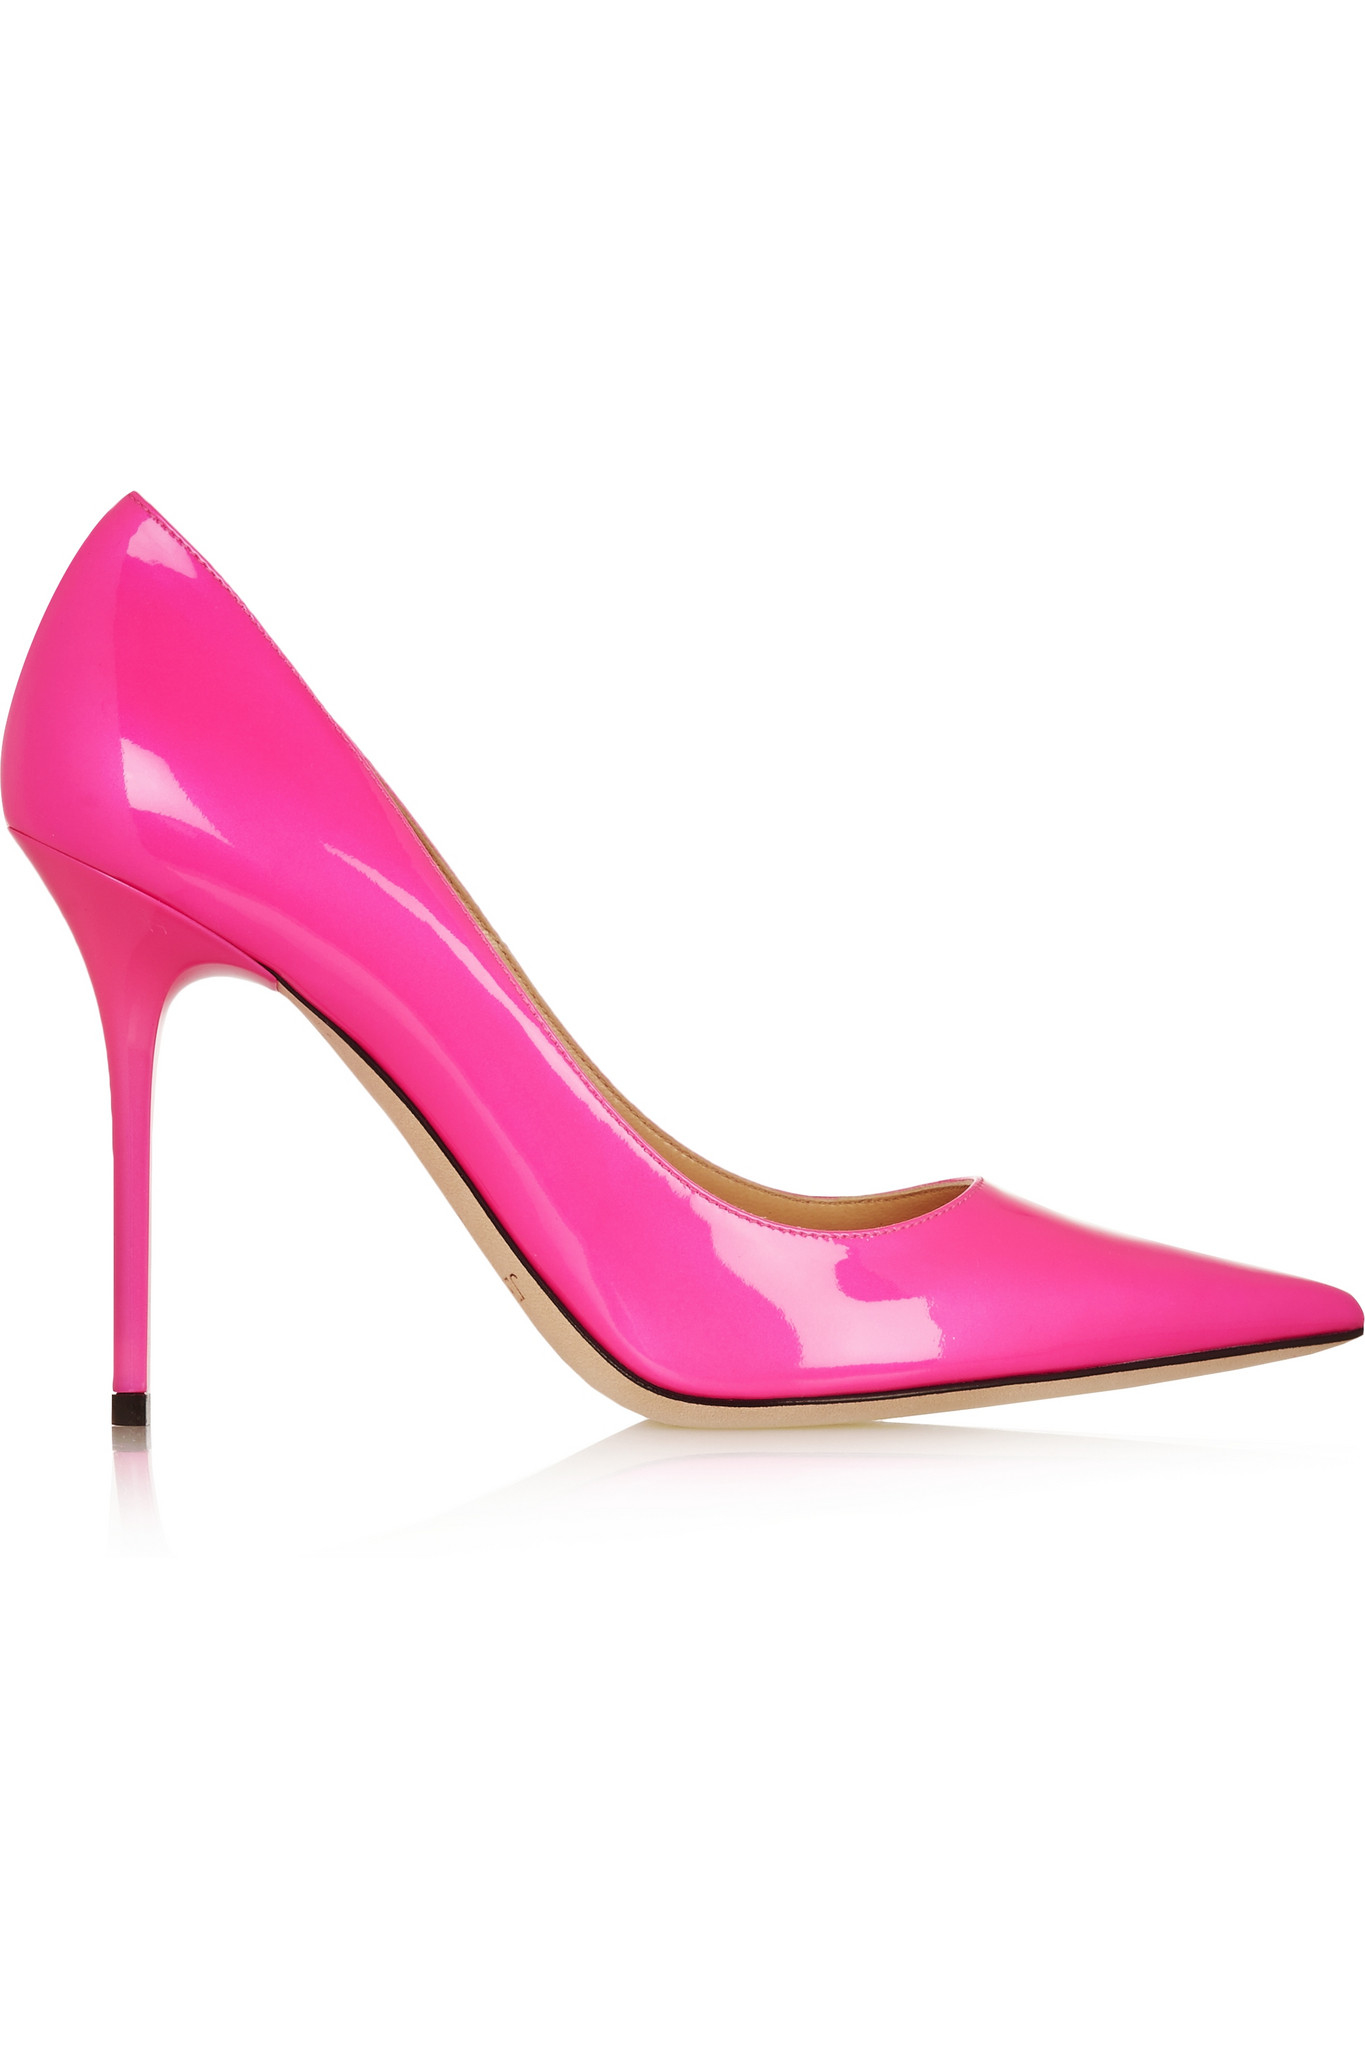 e8fe43c1368 Jimmy Choo Abel Neon Patent-leather Pumps in Pink - Lyst